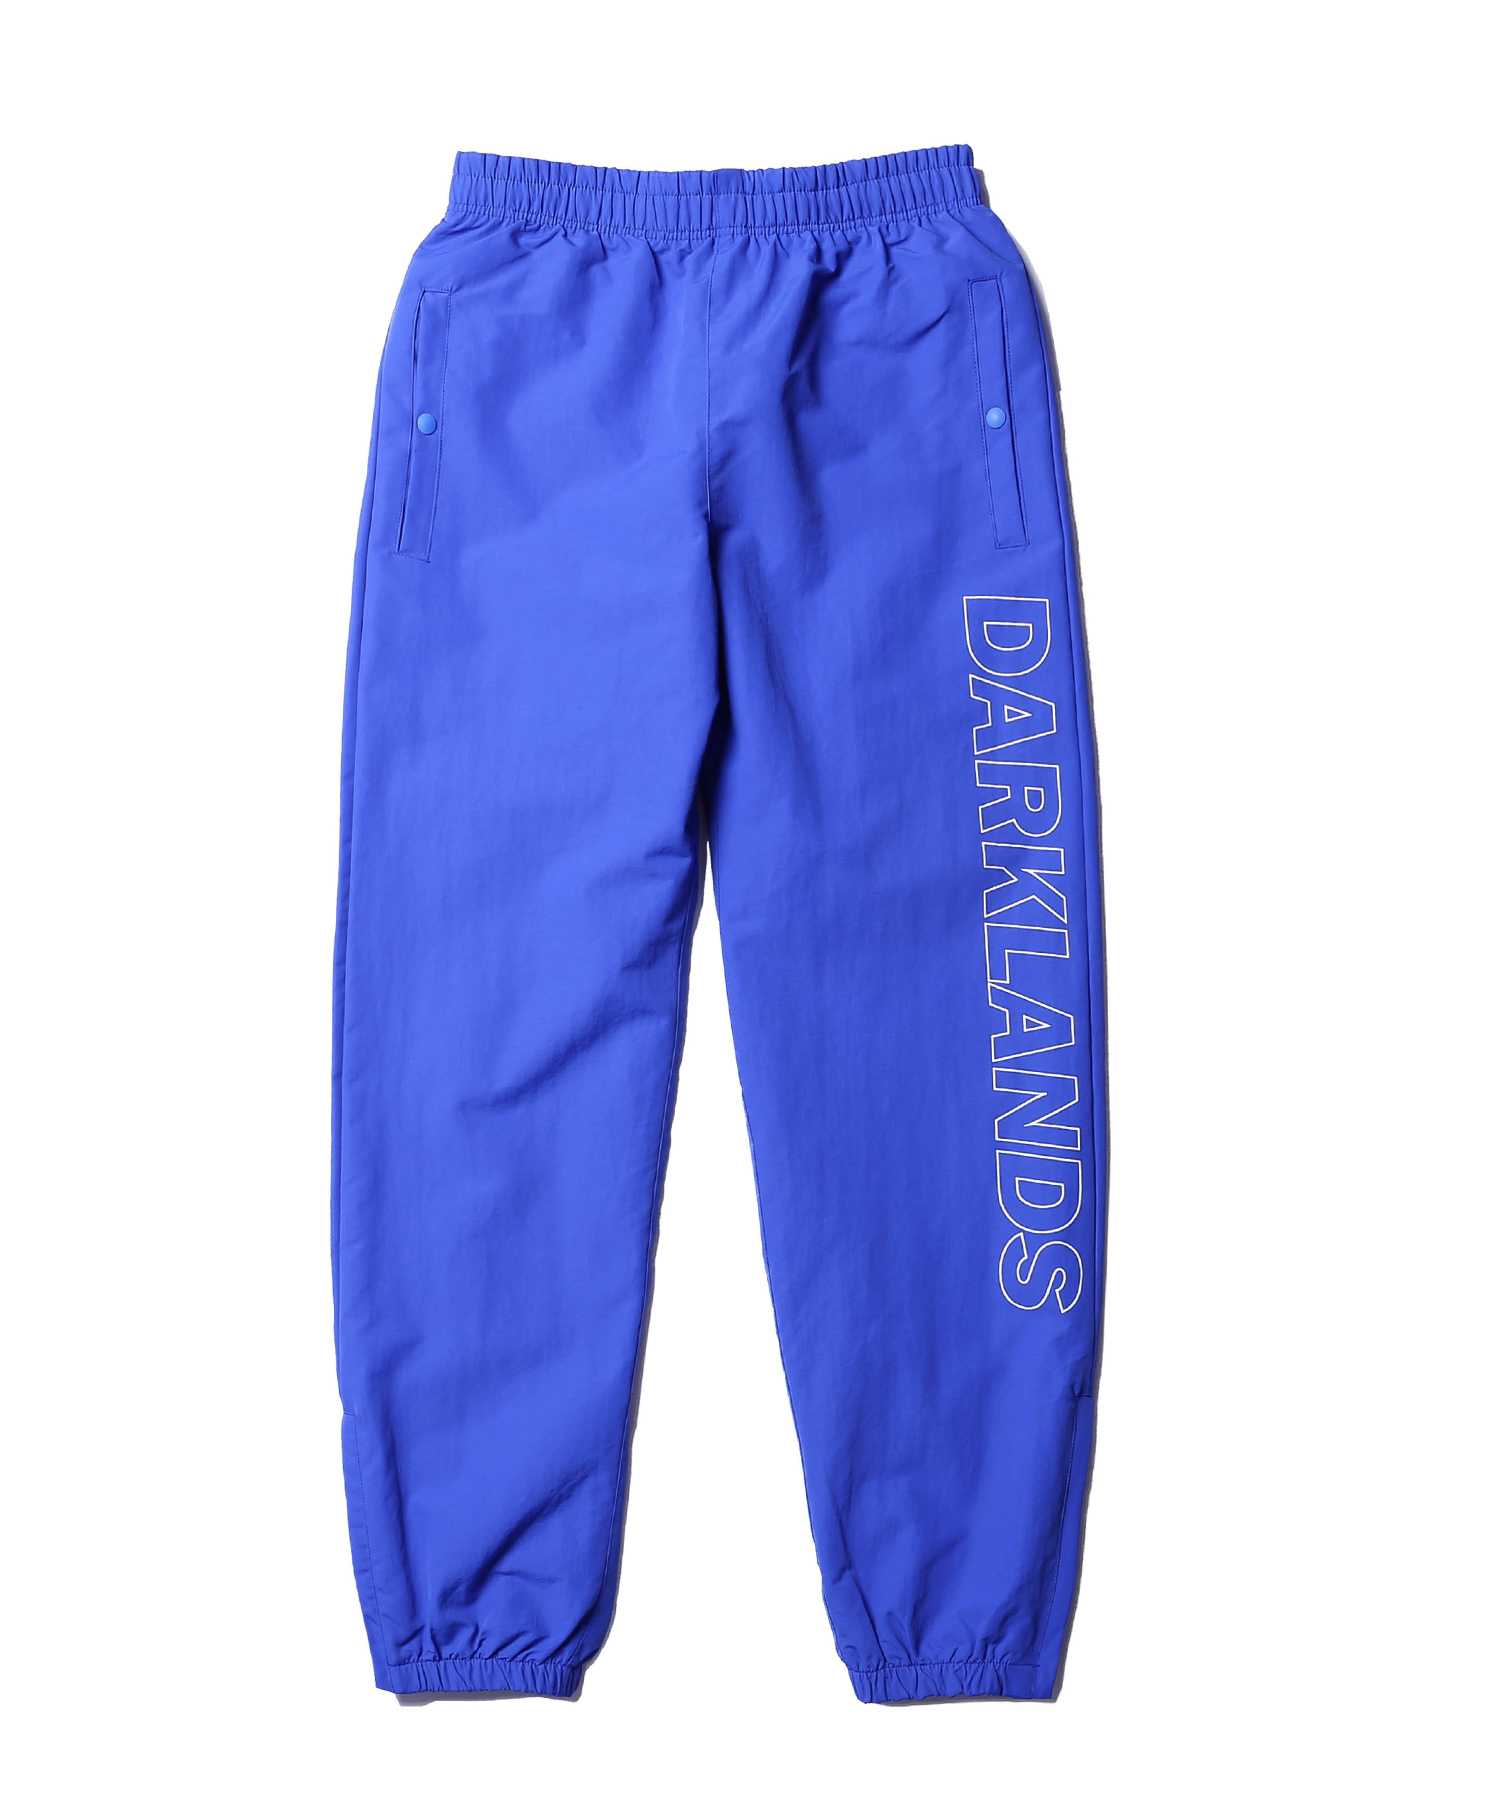 Darkland Track Pants (Blue)